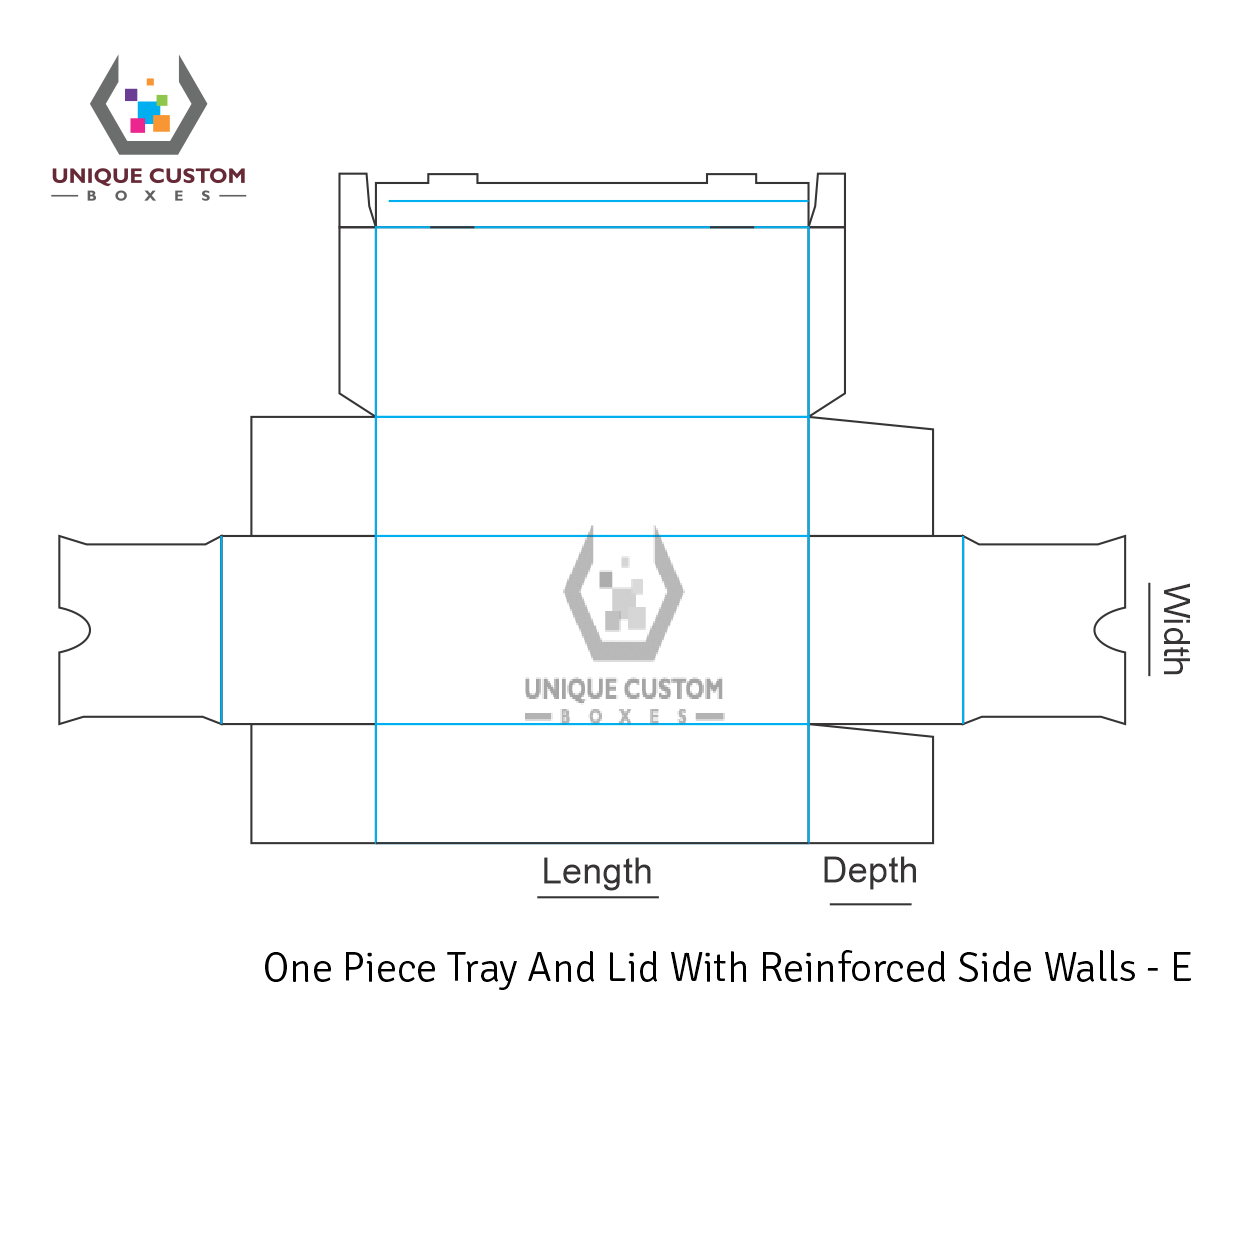 One-Piece-Tray-And-Lid-With-Reinforced-Side-Walls-4